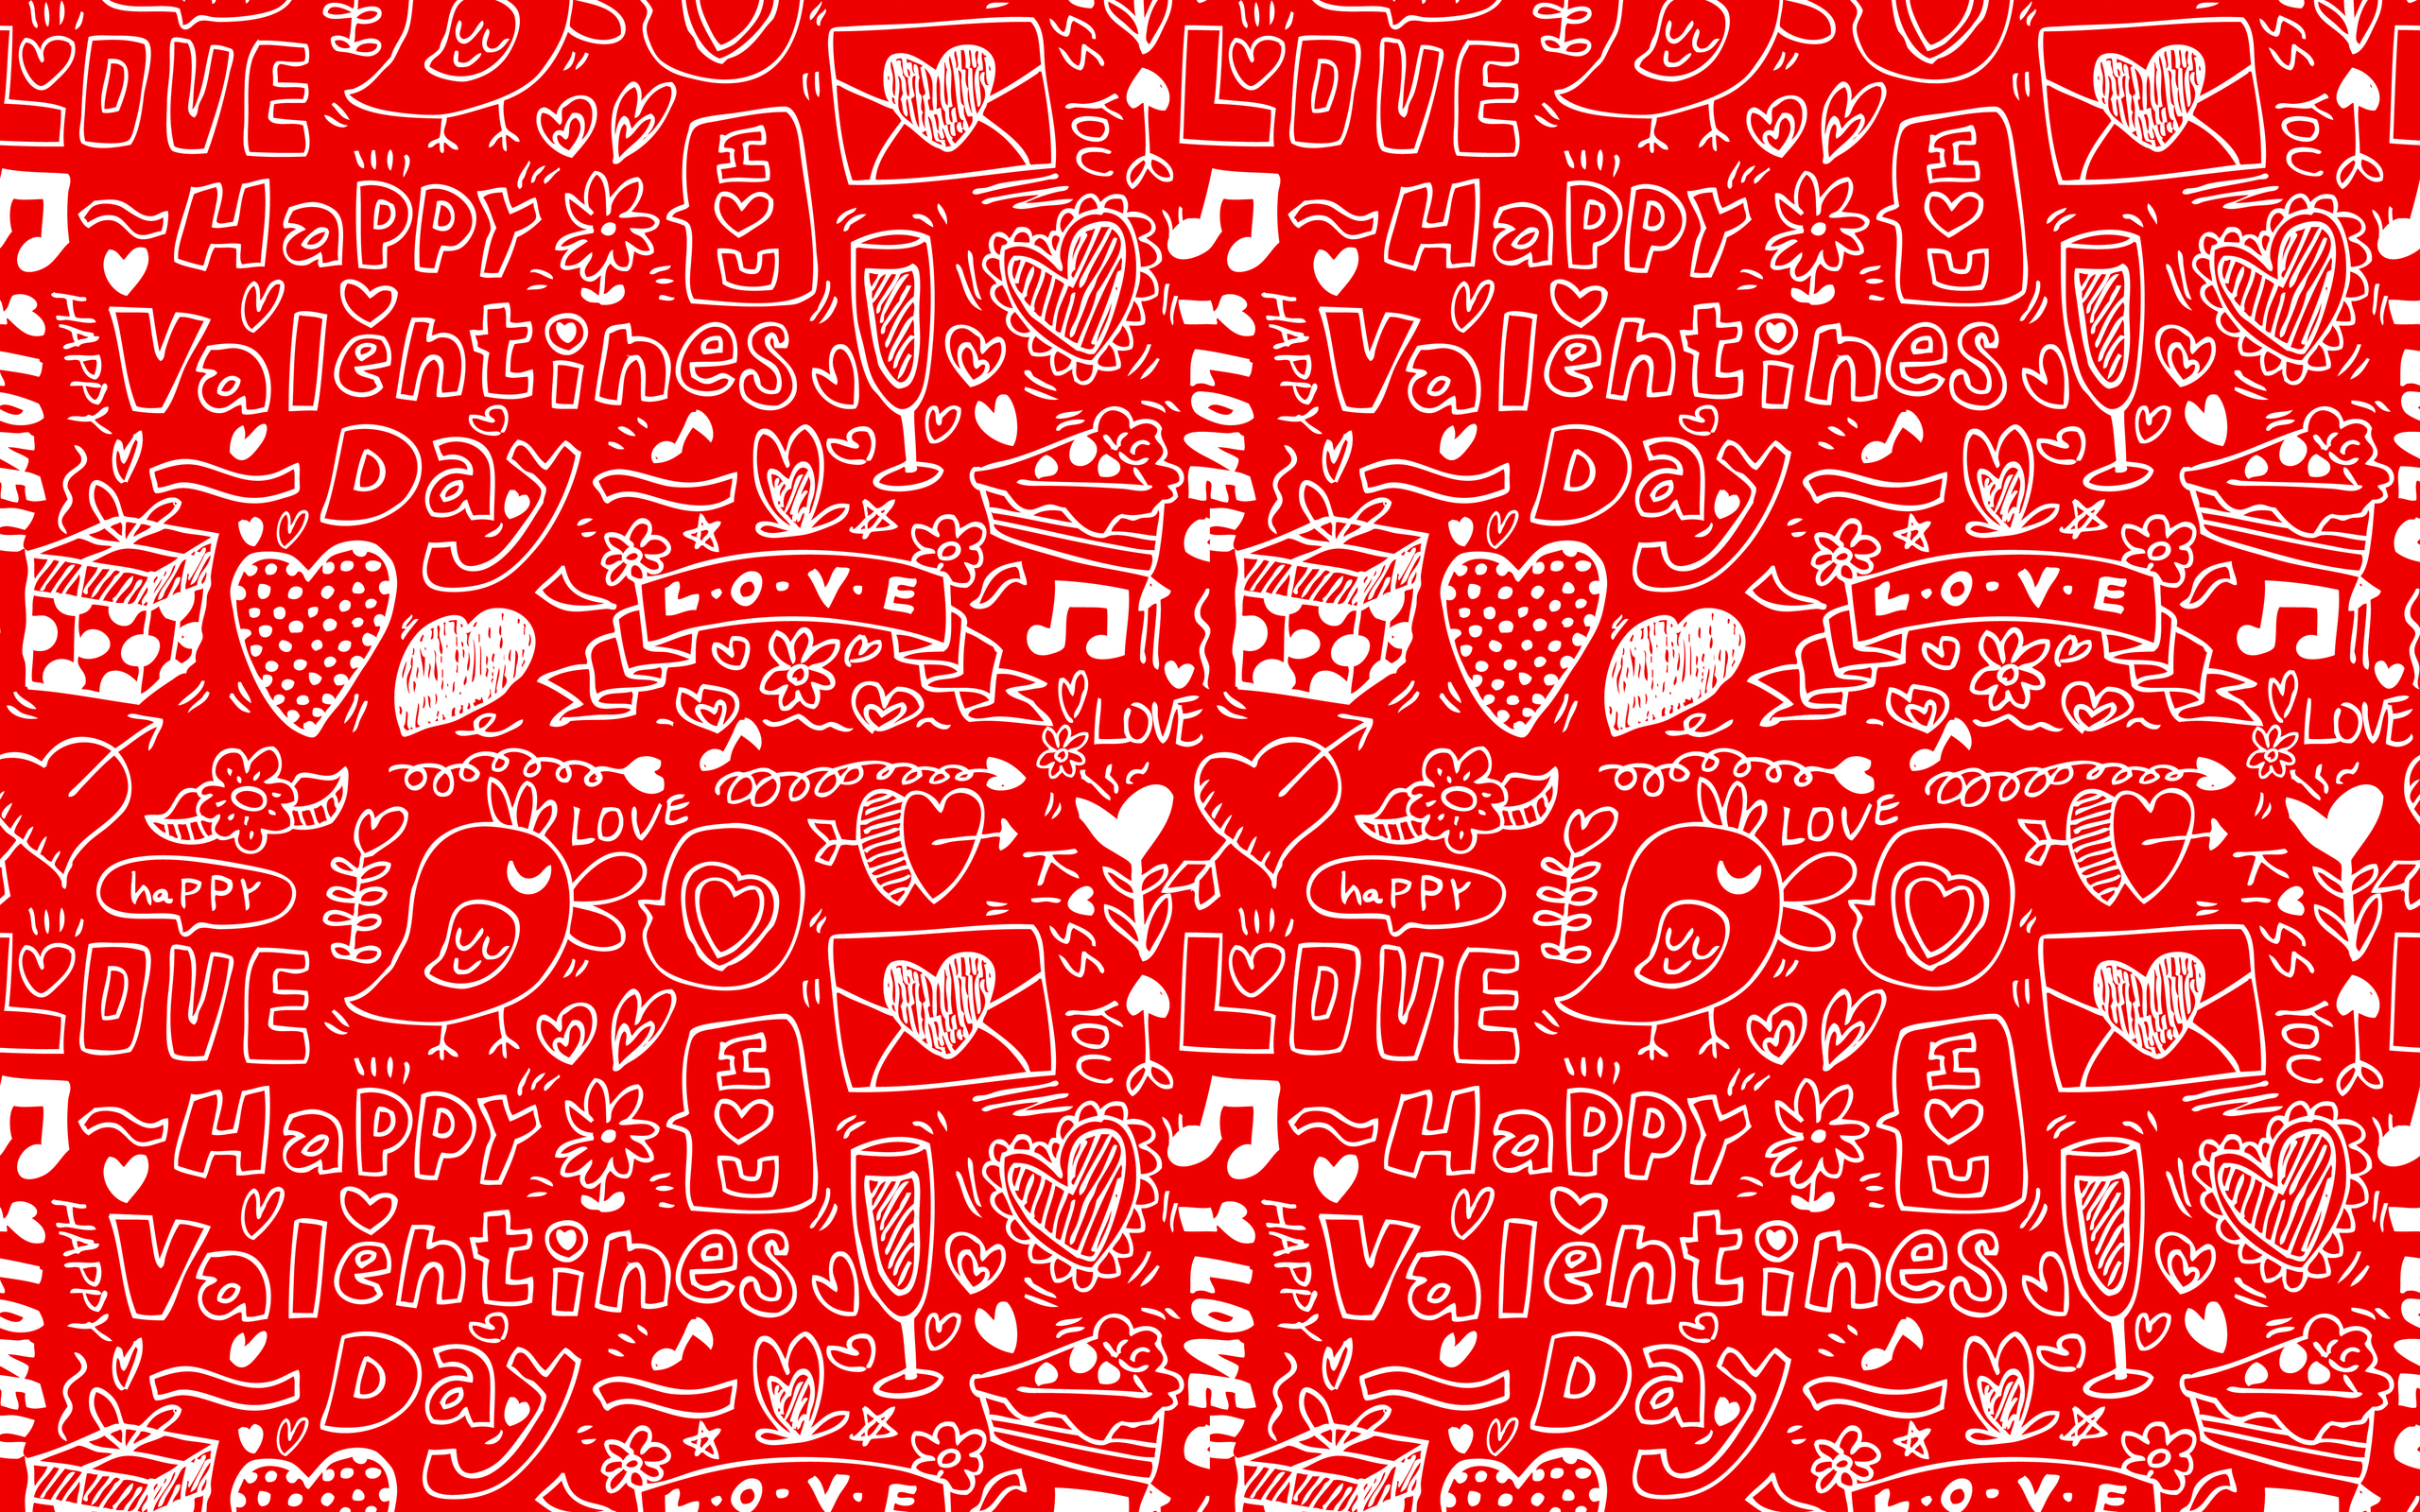 Happy Valentines Day widescreen wallpaper Wide WallpapersNET 2560x1600